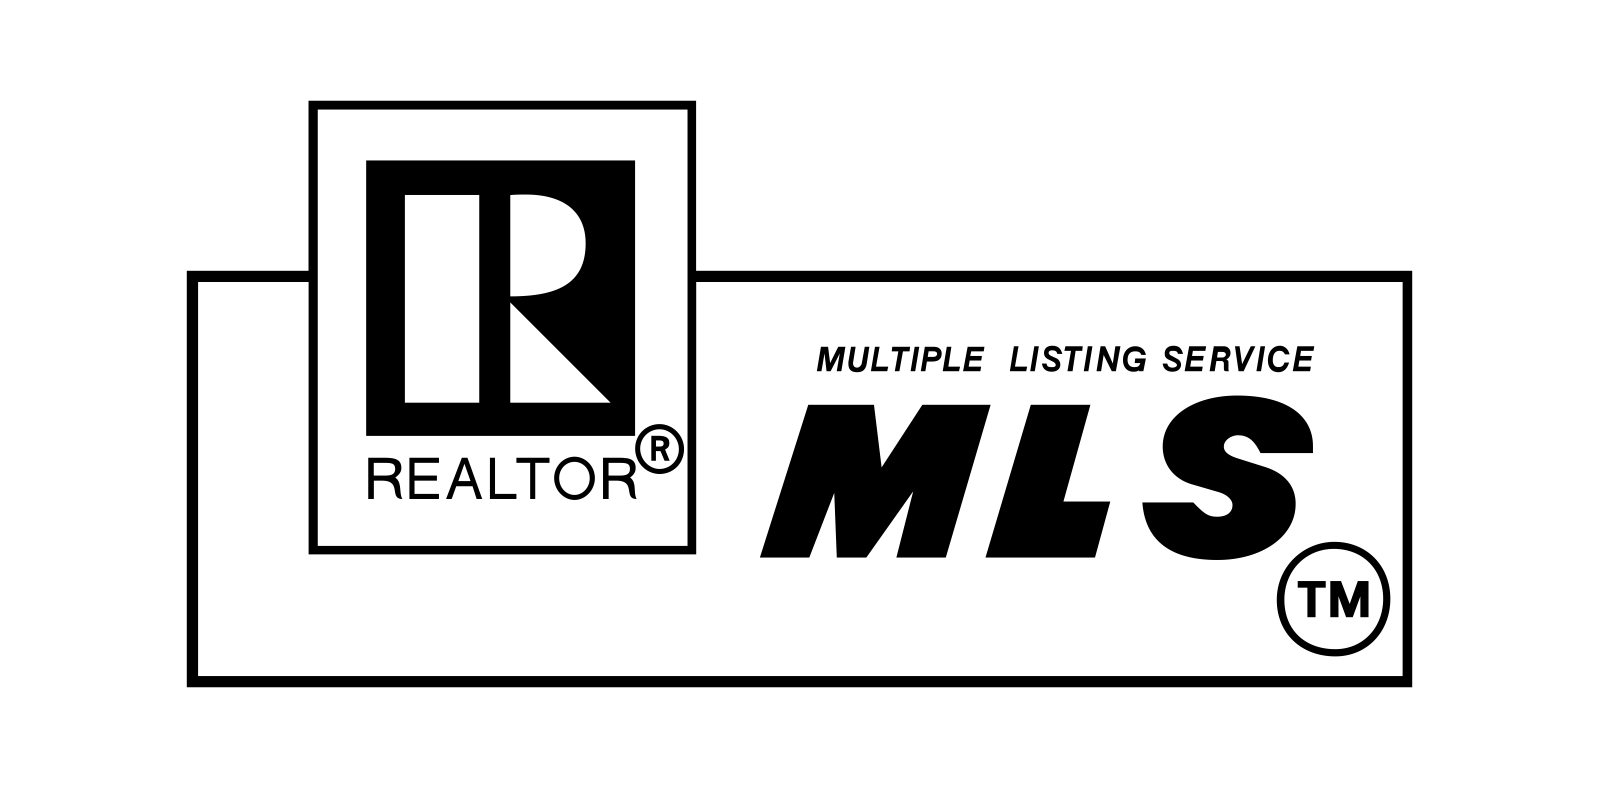 Realtor Logo - MLS Realtor Logo, MLS Realtor Symbol, Meaning, History and Evolution